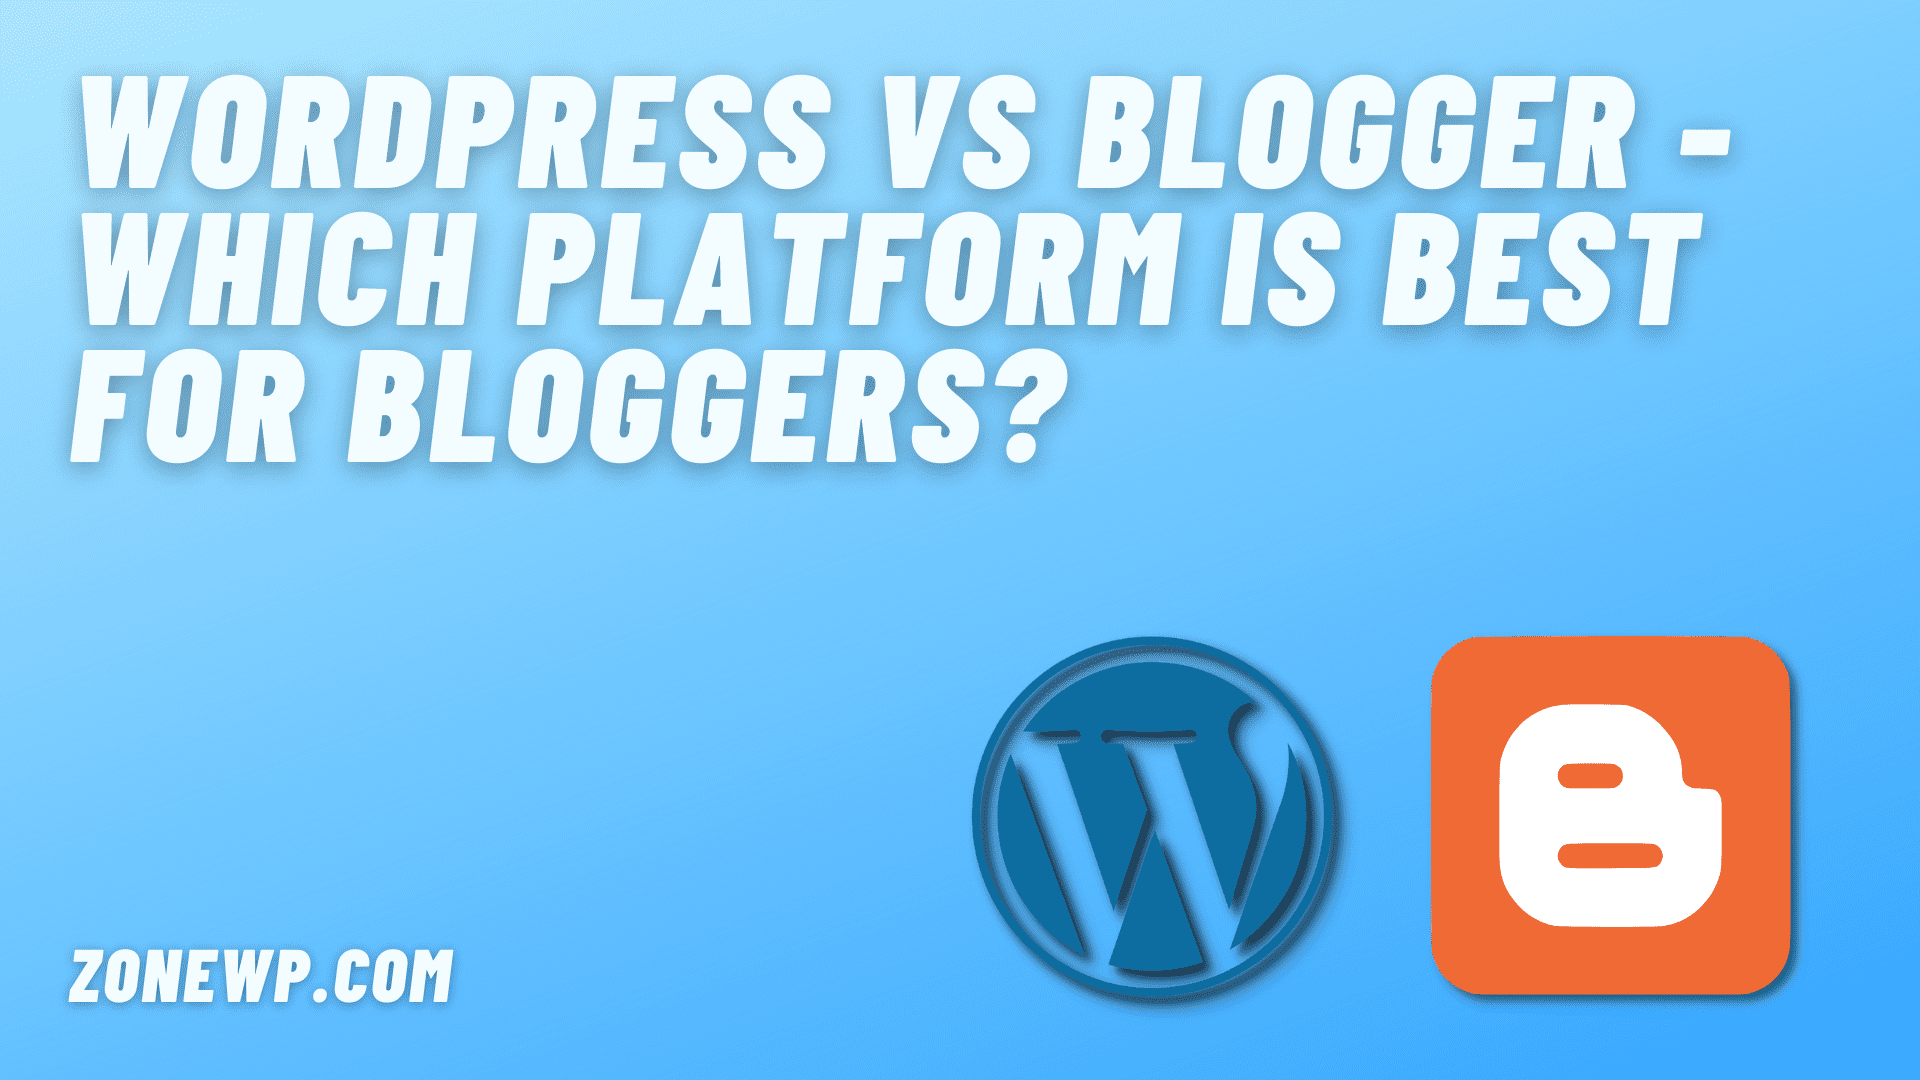 WordPress vs Blogger - Which platform is best for Bloggers?